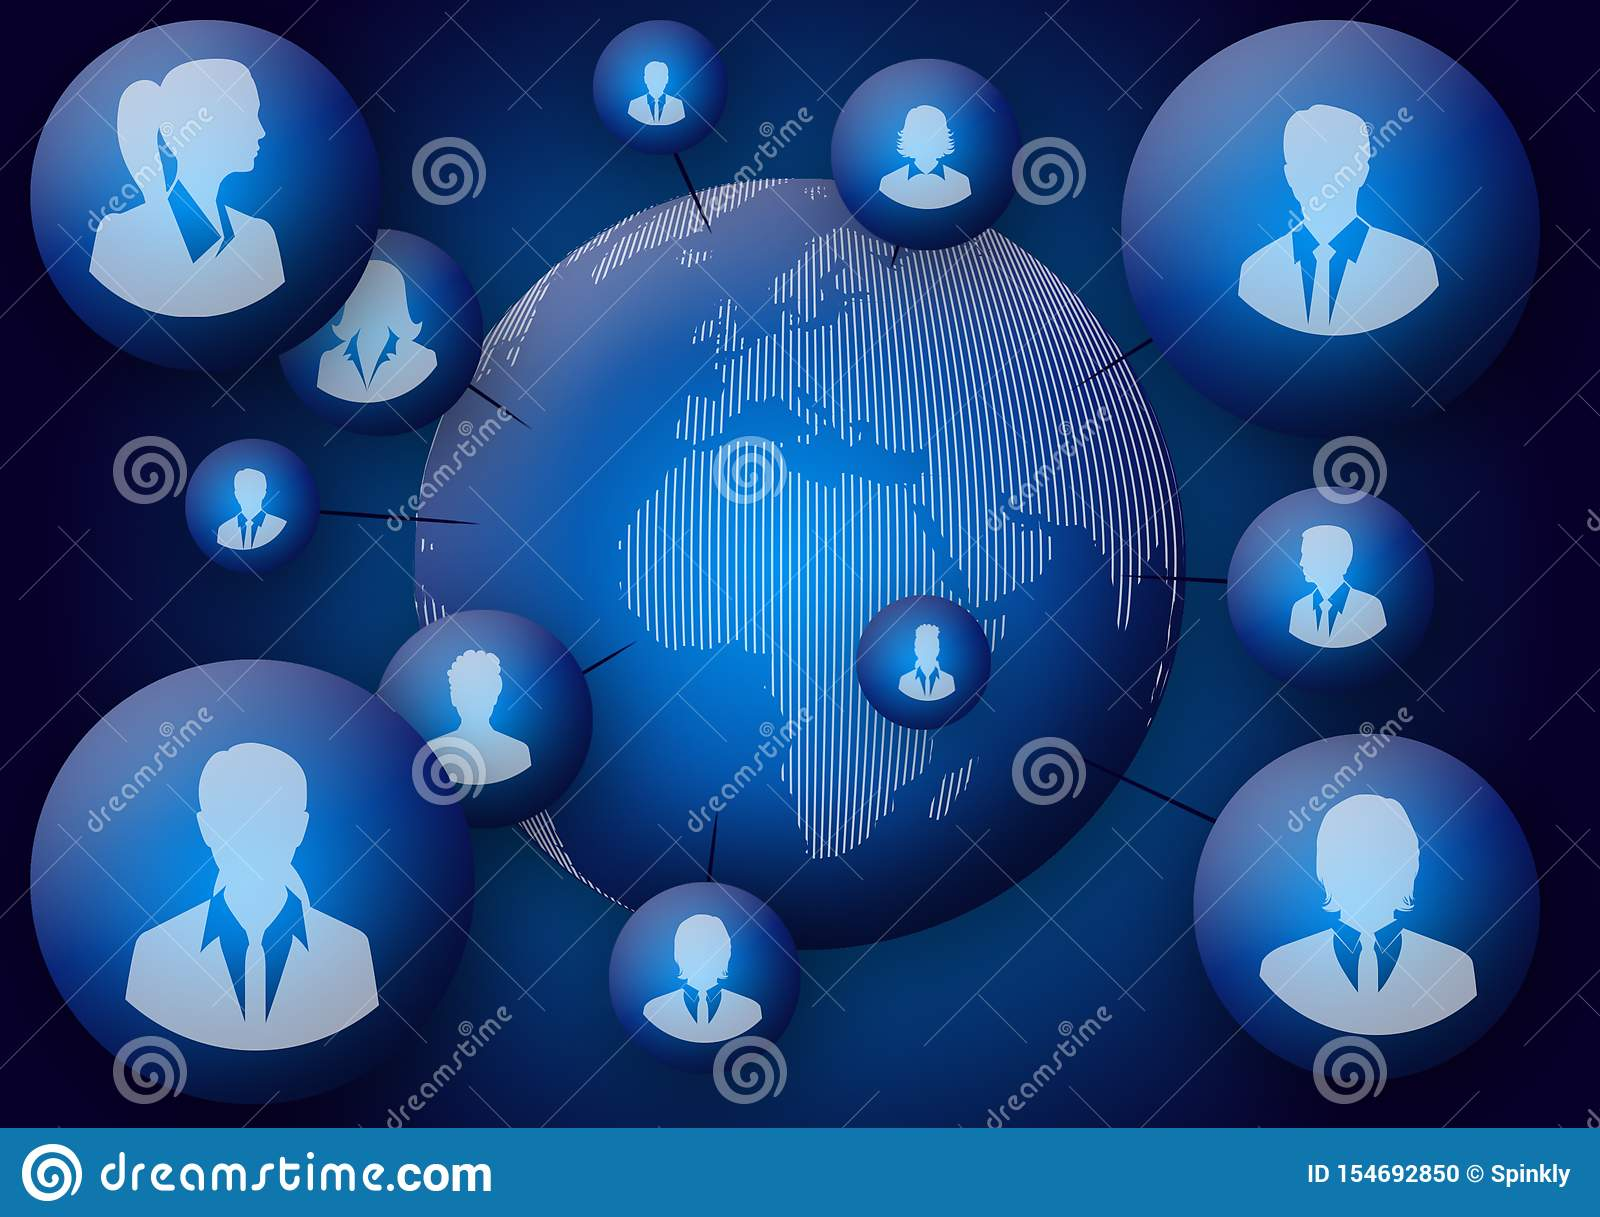 Social Interaction Wallpaper 3d Image Background Stock